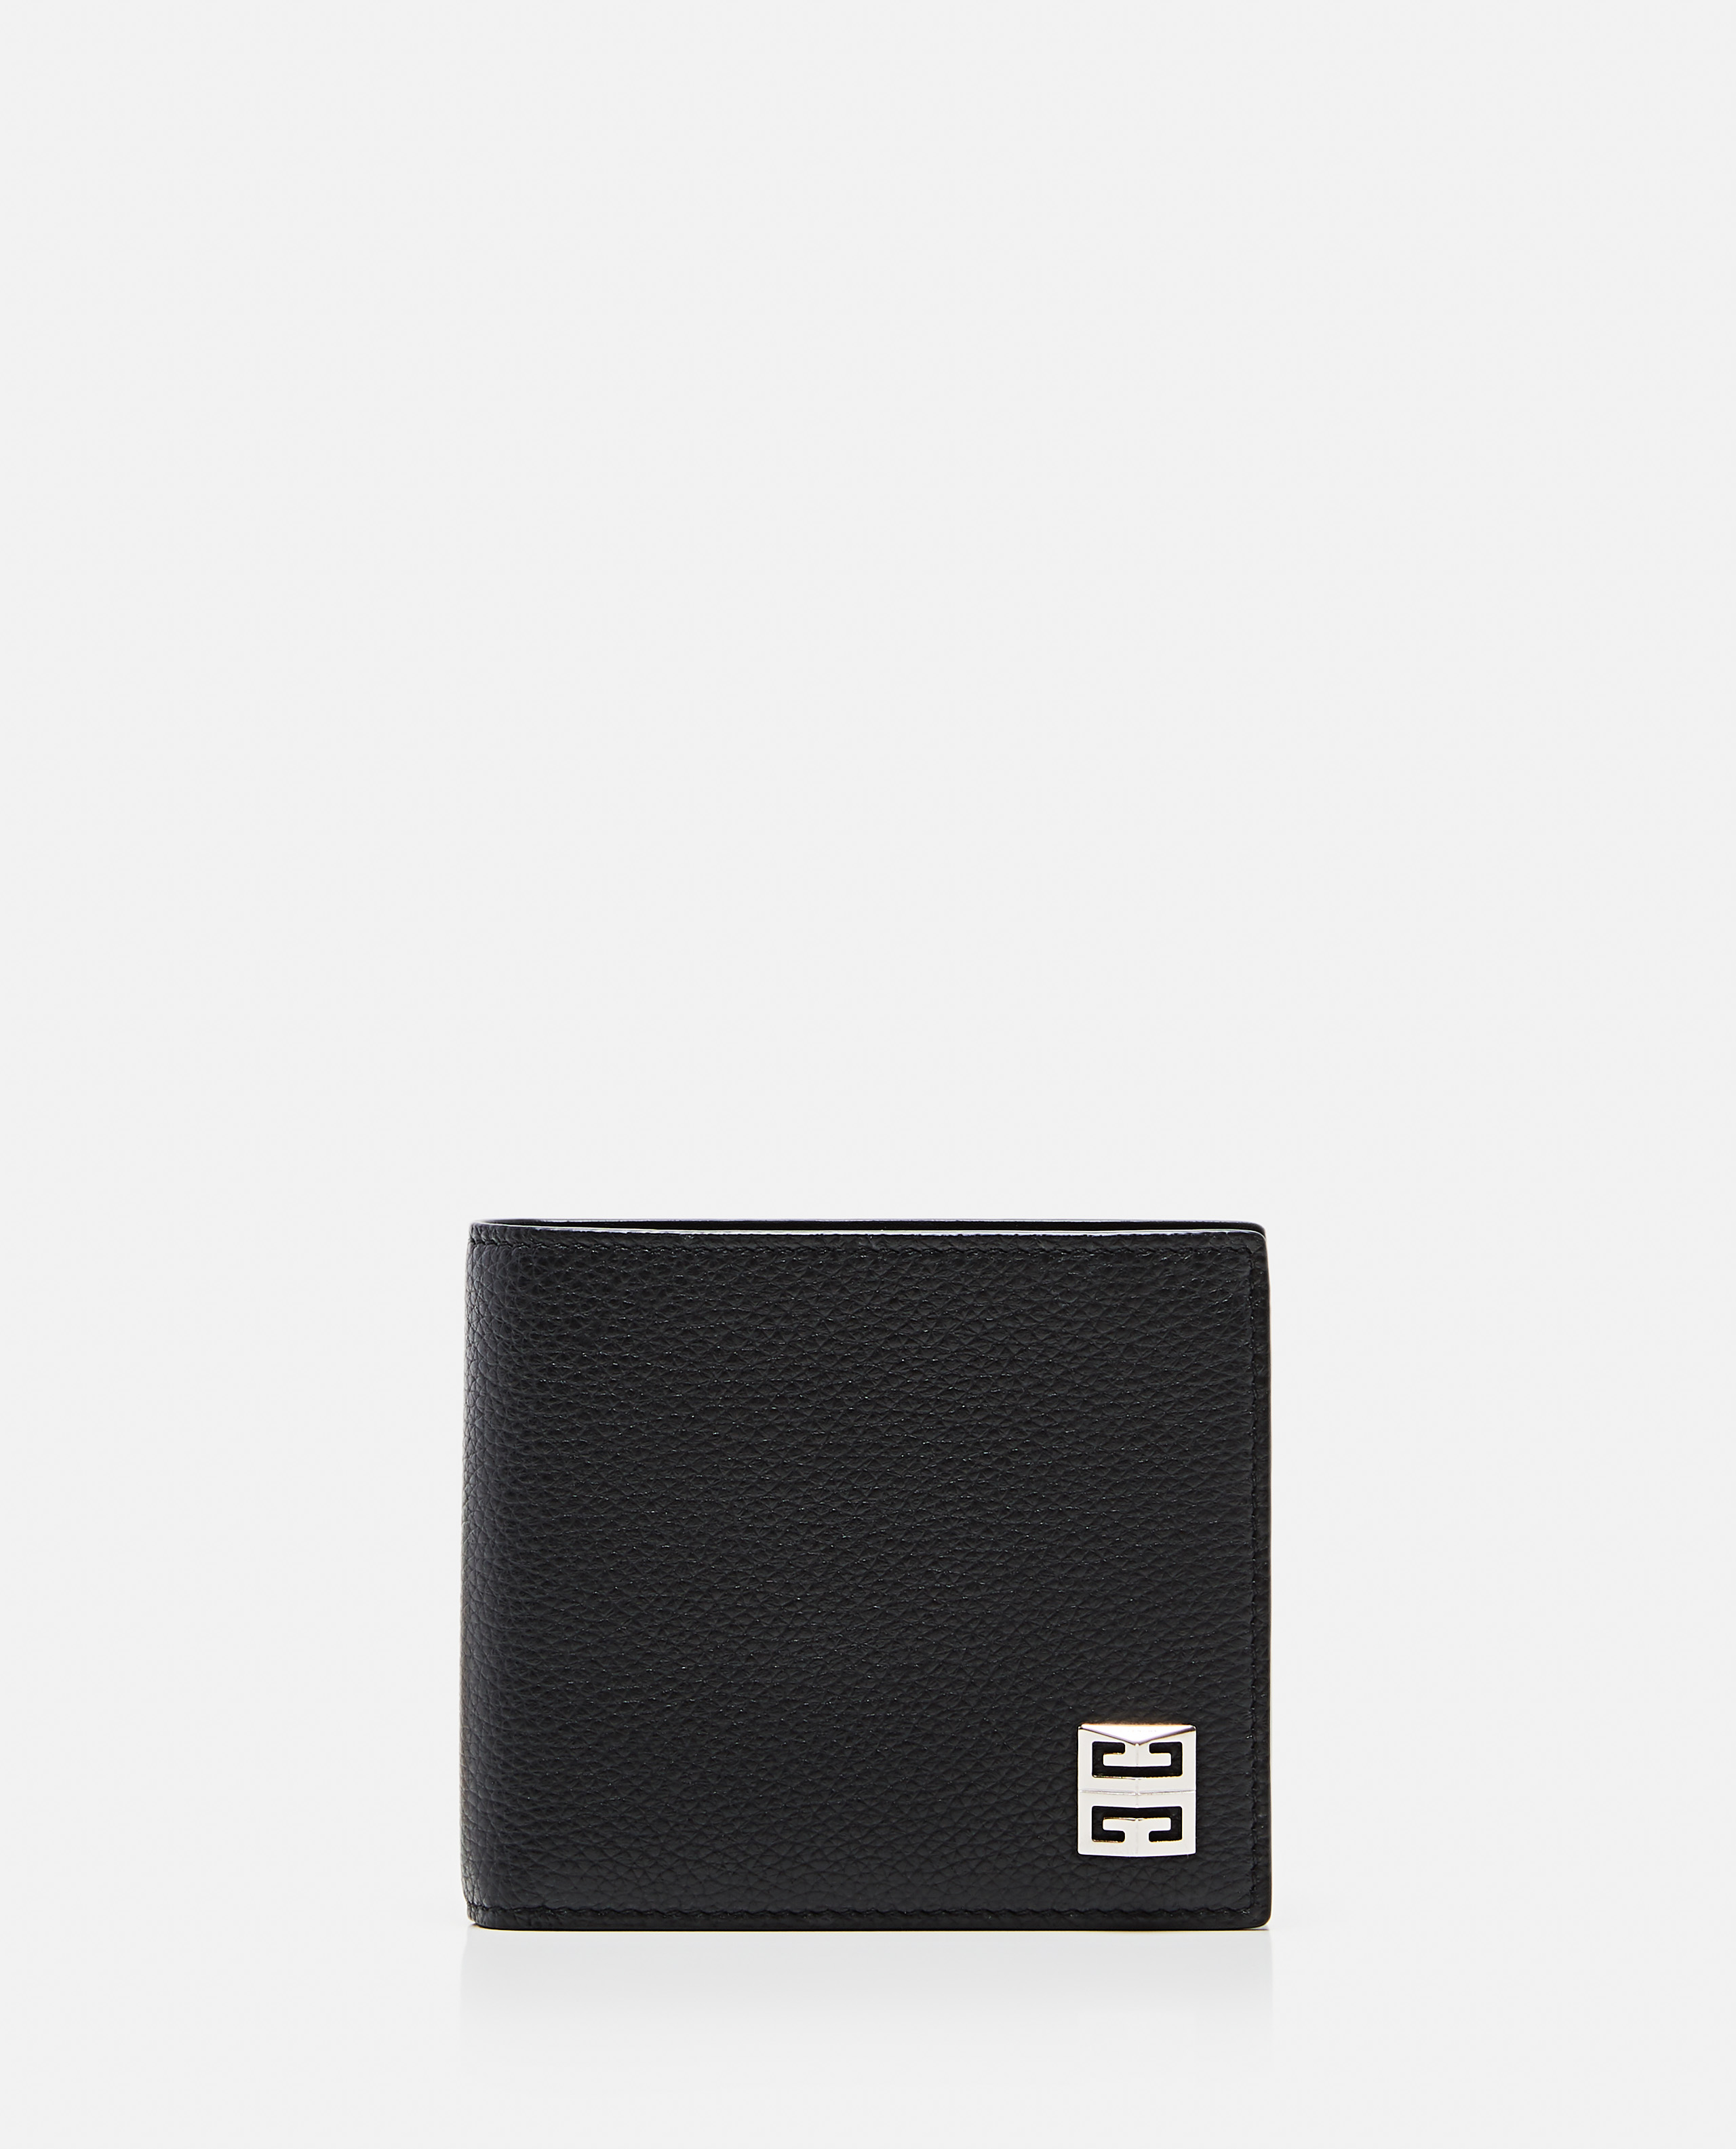 GIVENCHY GIVENCHY 4CC  GRAINED LEATHER COIN WALLET